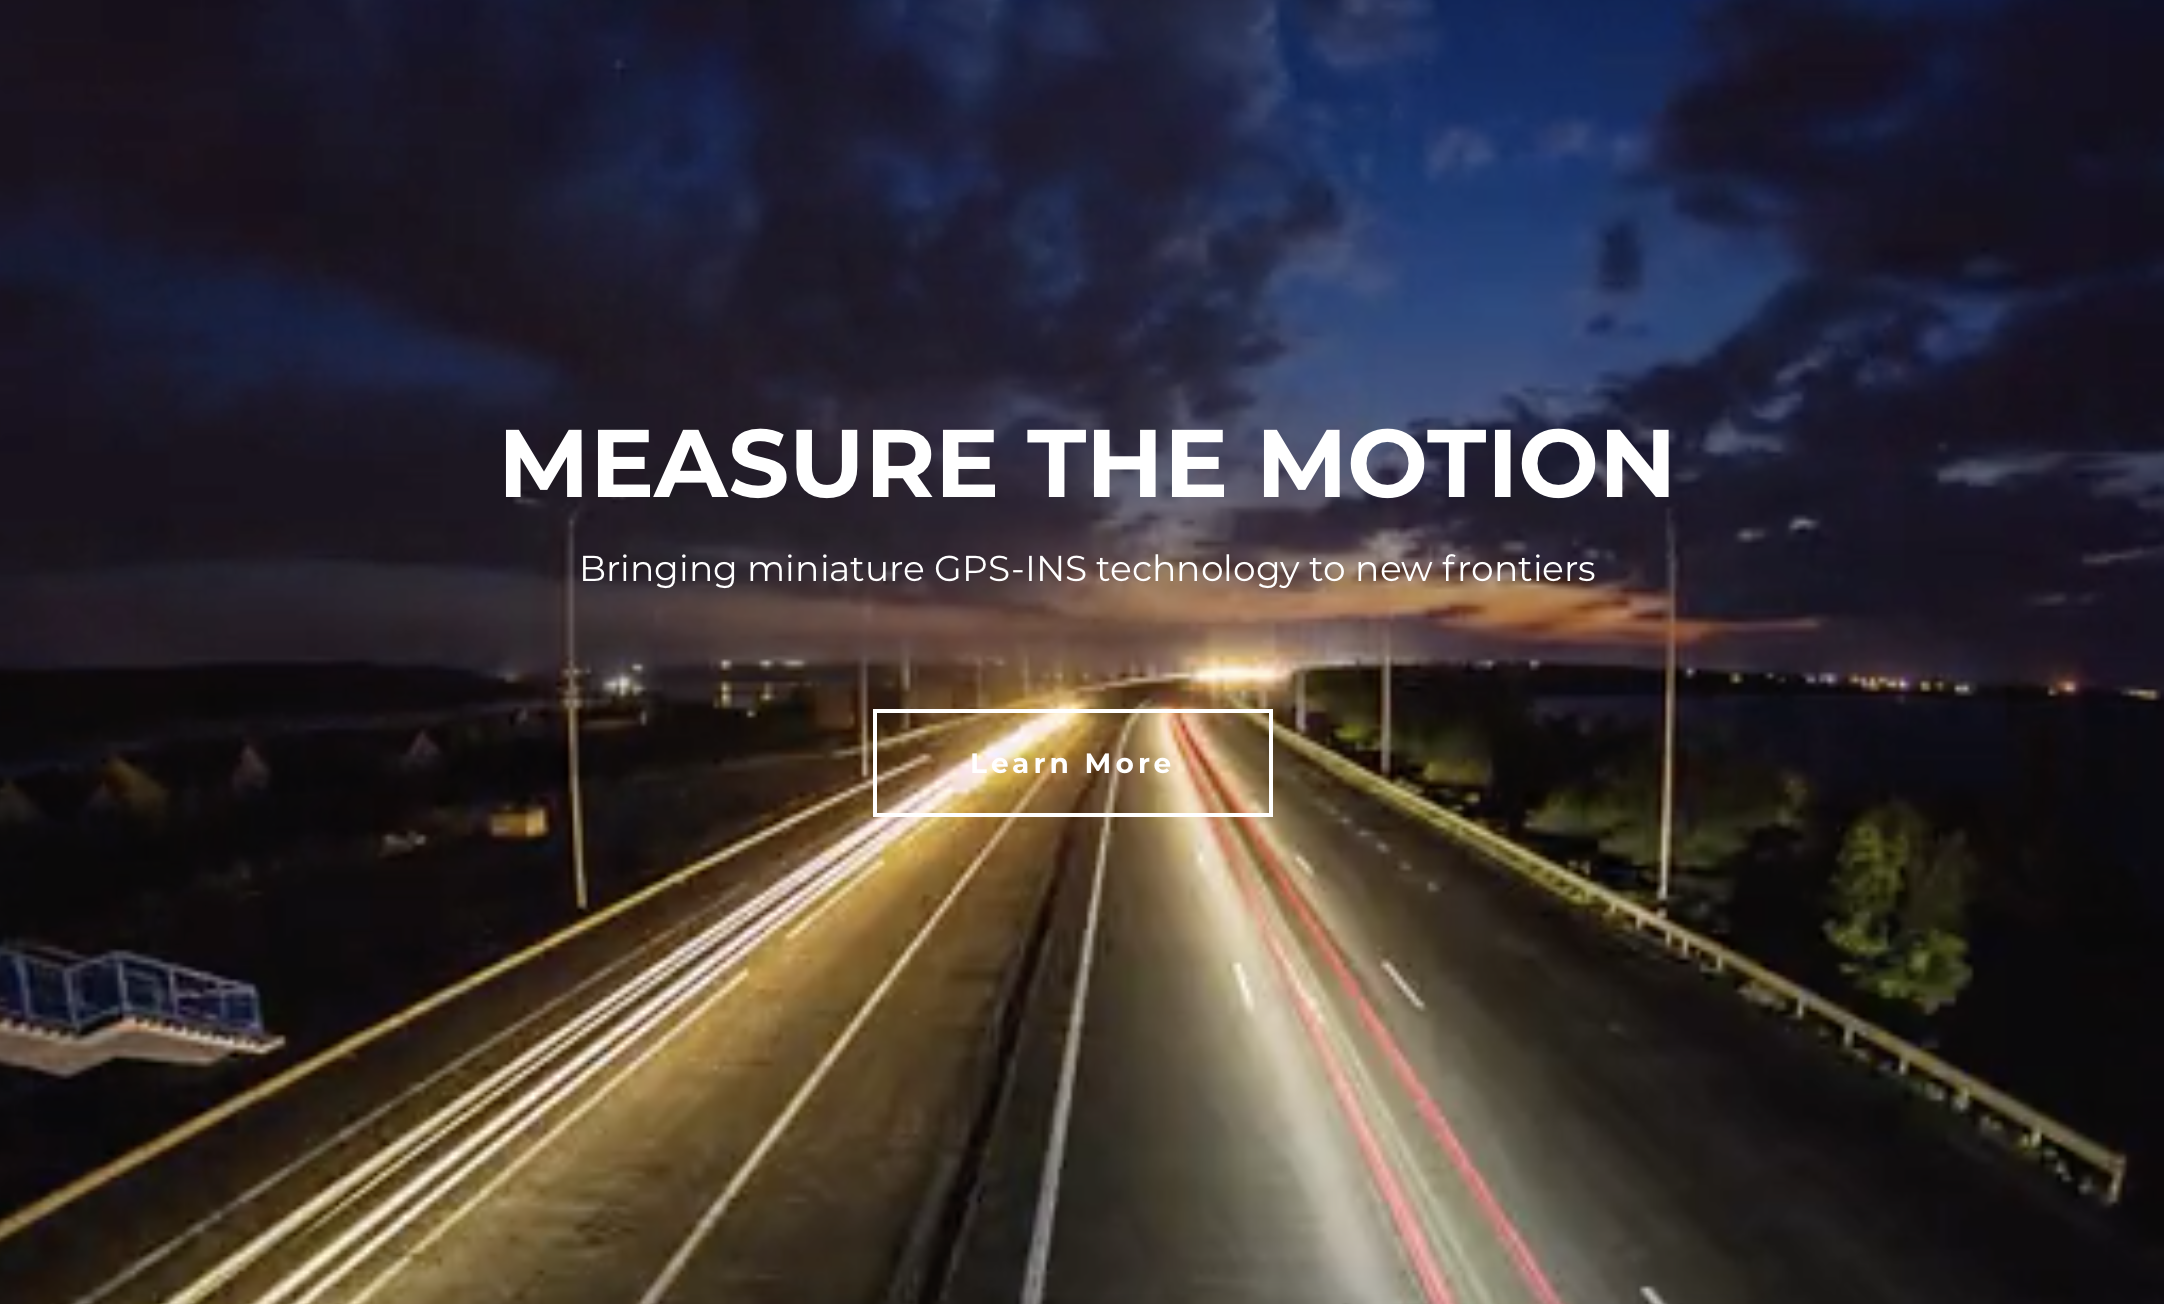 Measure the Motion